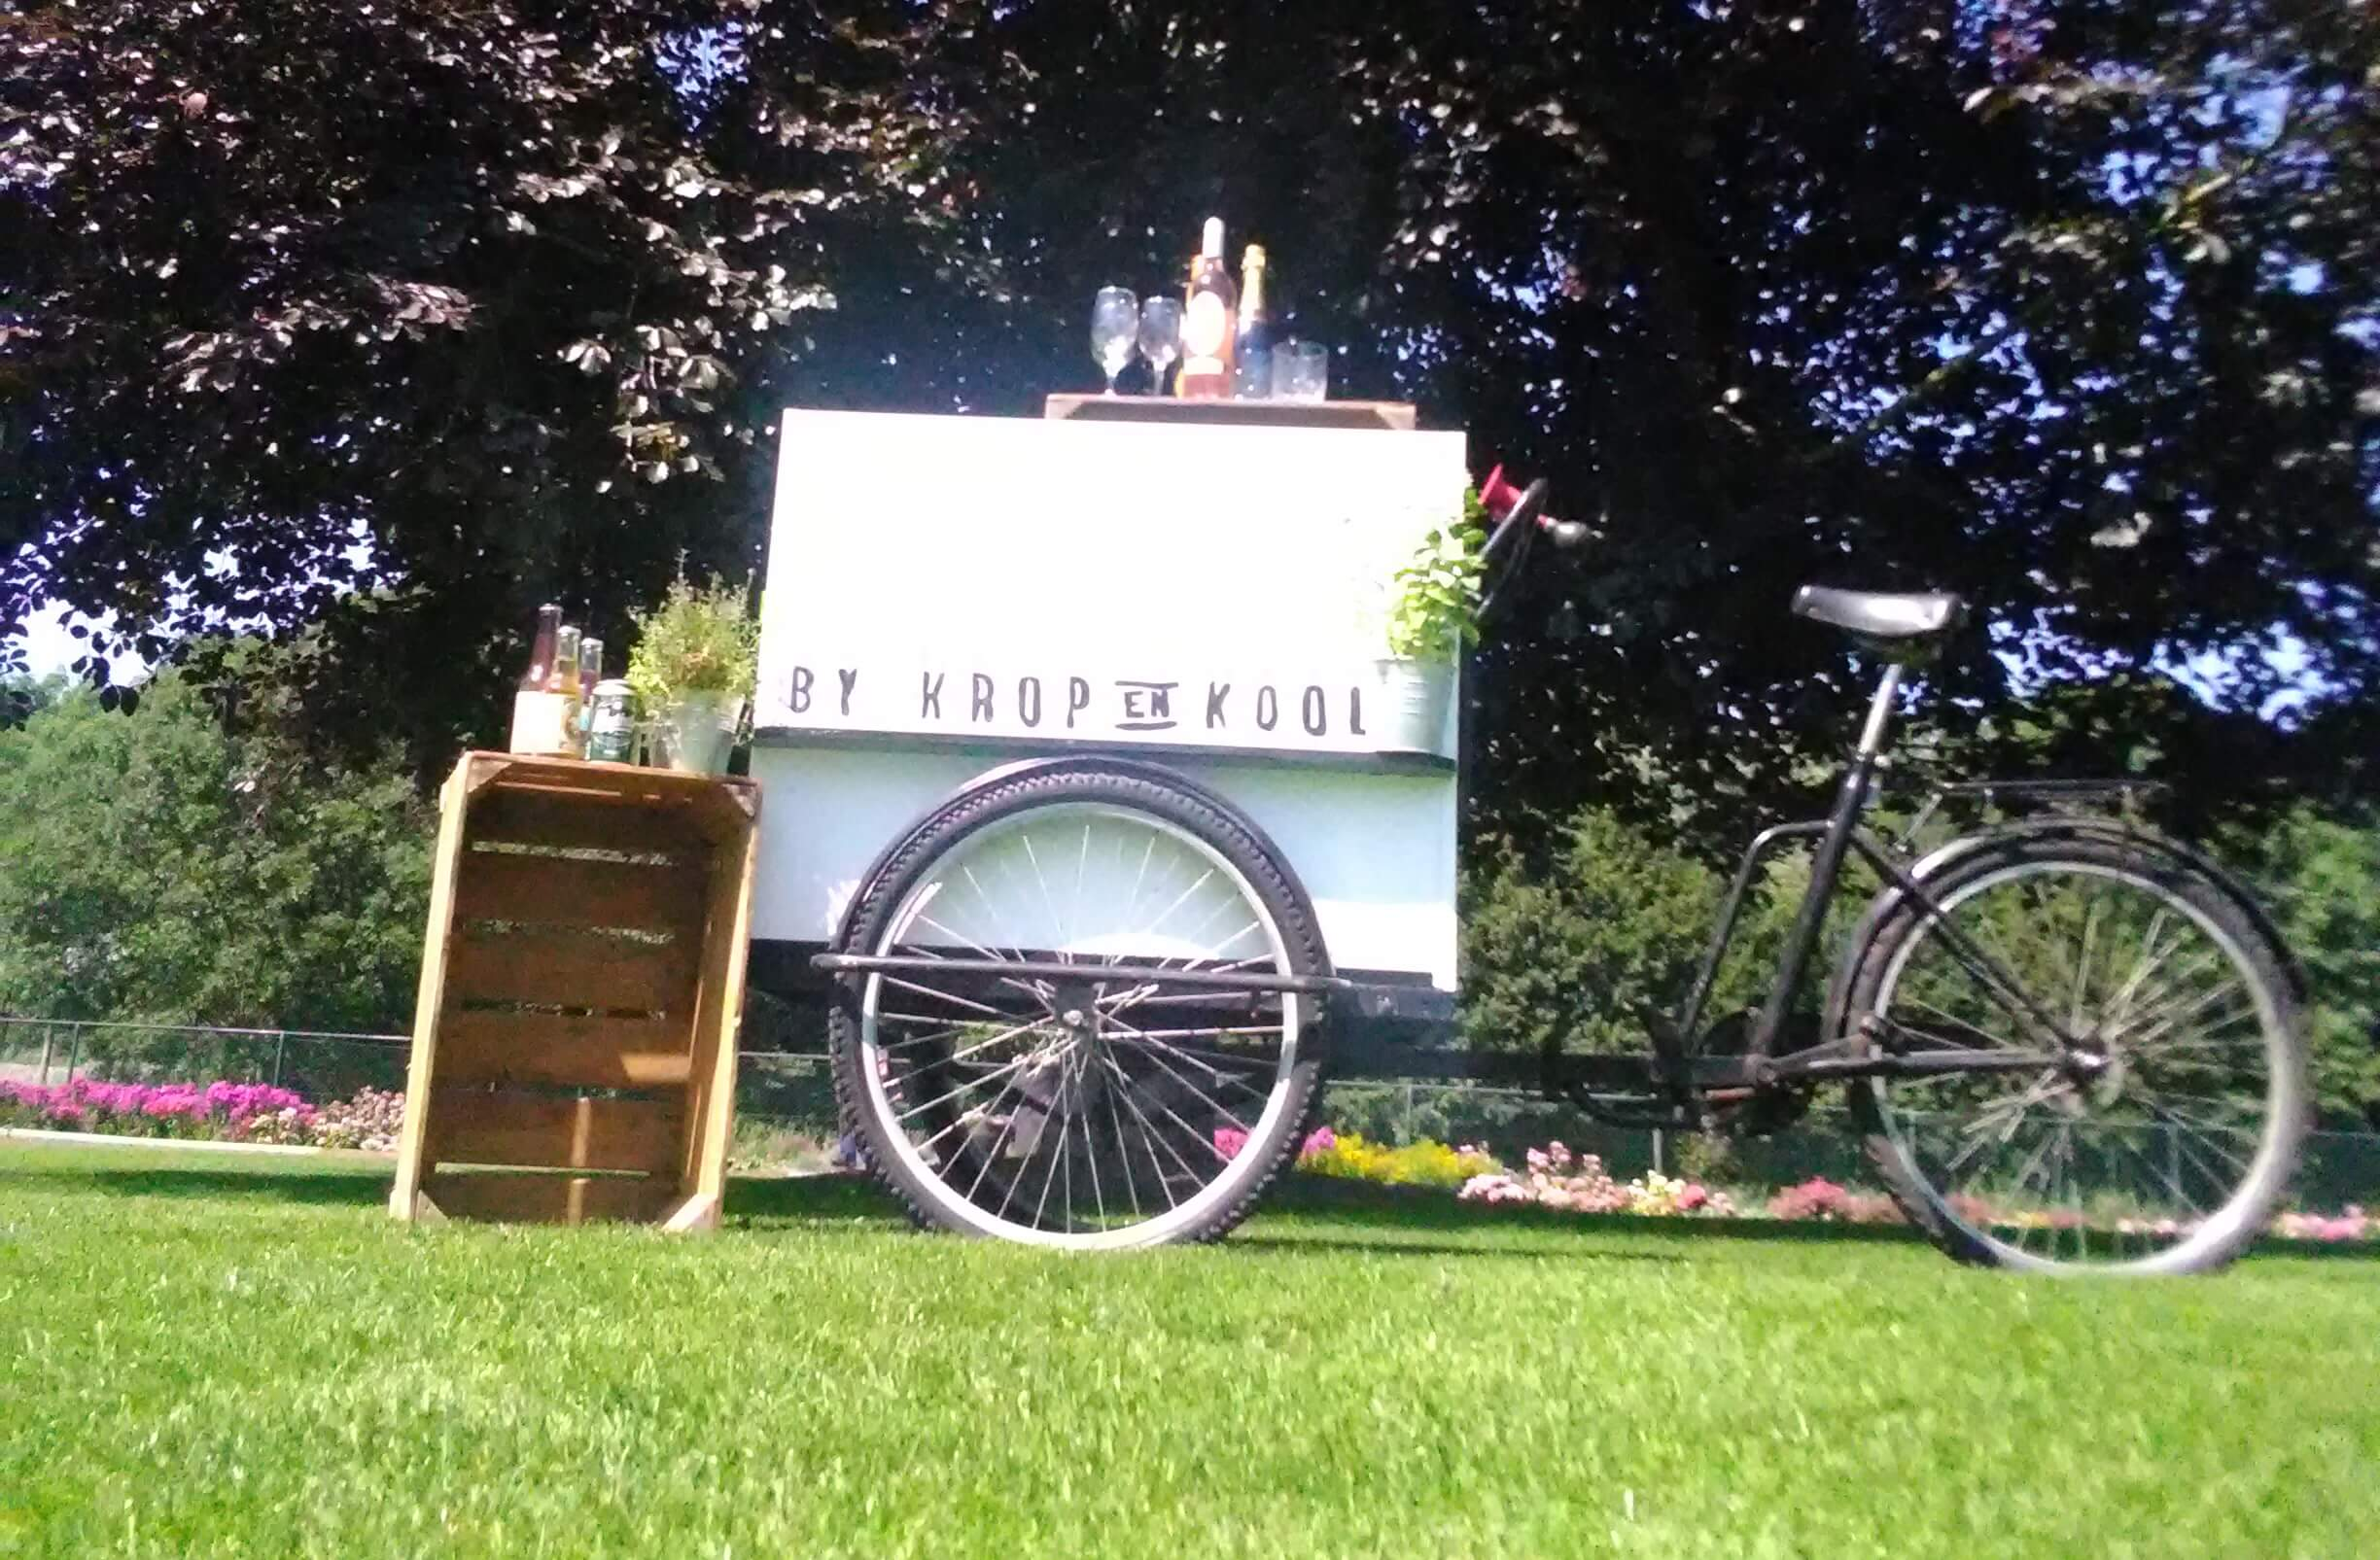 duurzame catering met caterbikes